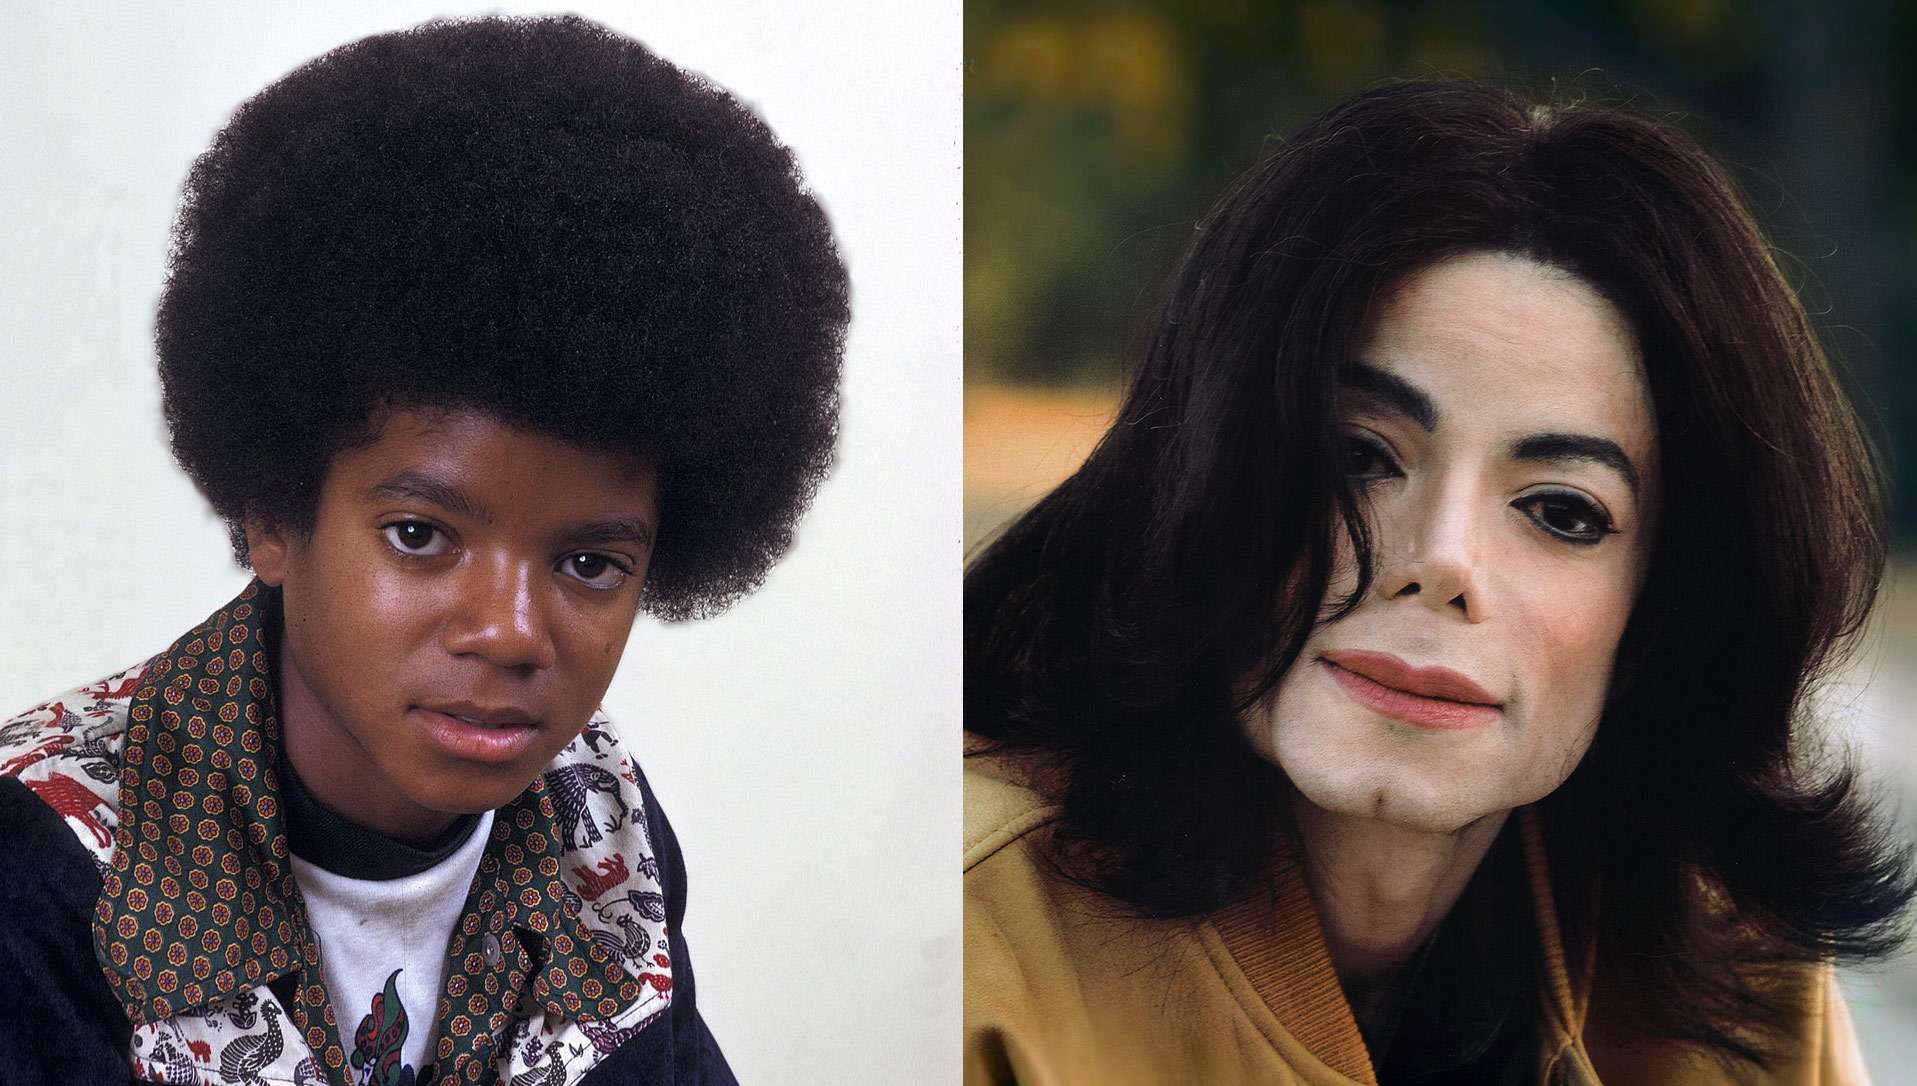 Prince, Michael Jackson, and the Use of Music to Corrupt ...